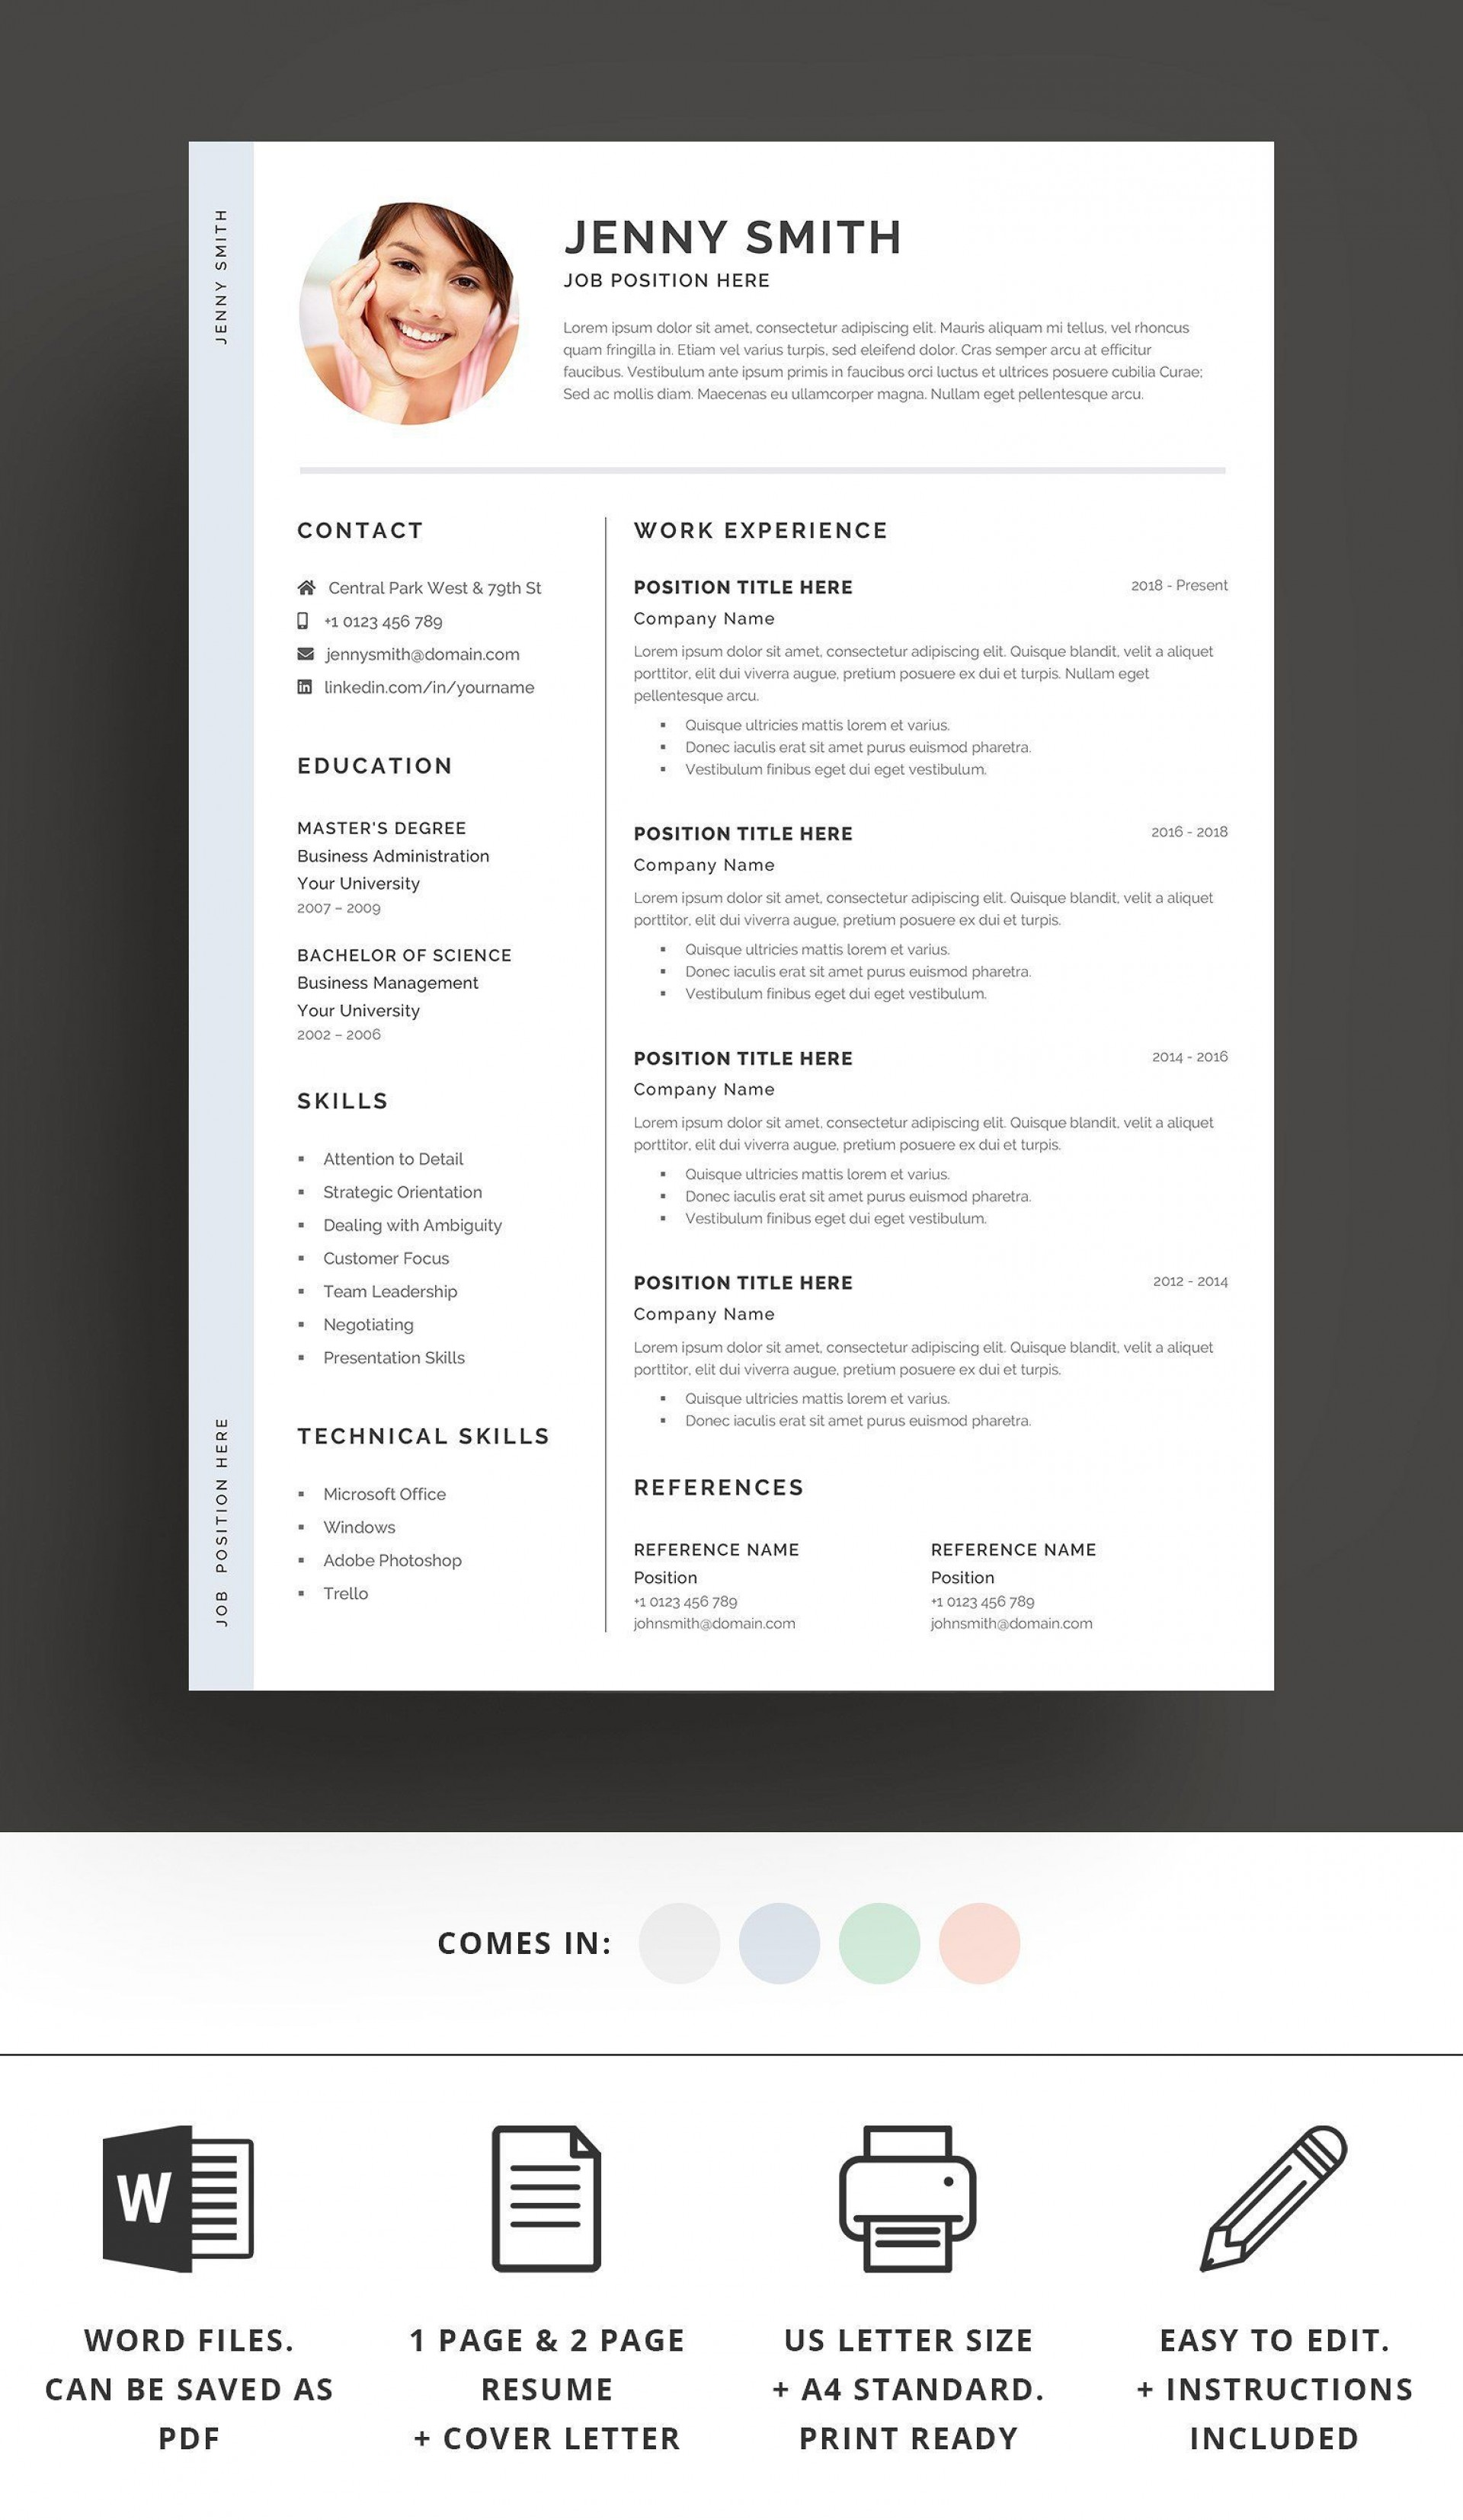 001 Impressive Resume Template On Word Picture  2007 Download 2016 How To Get 20101920